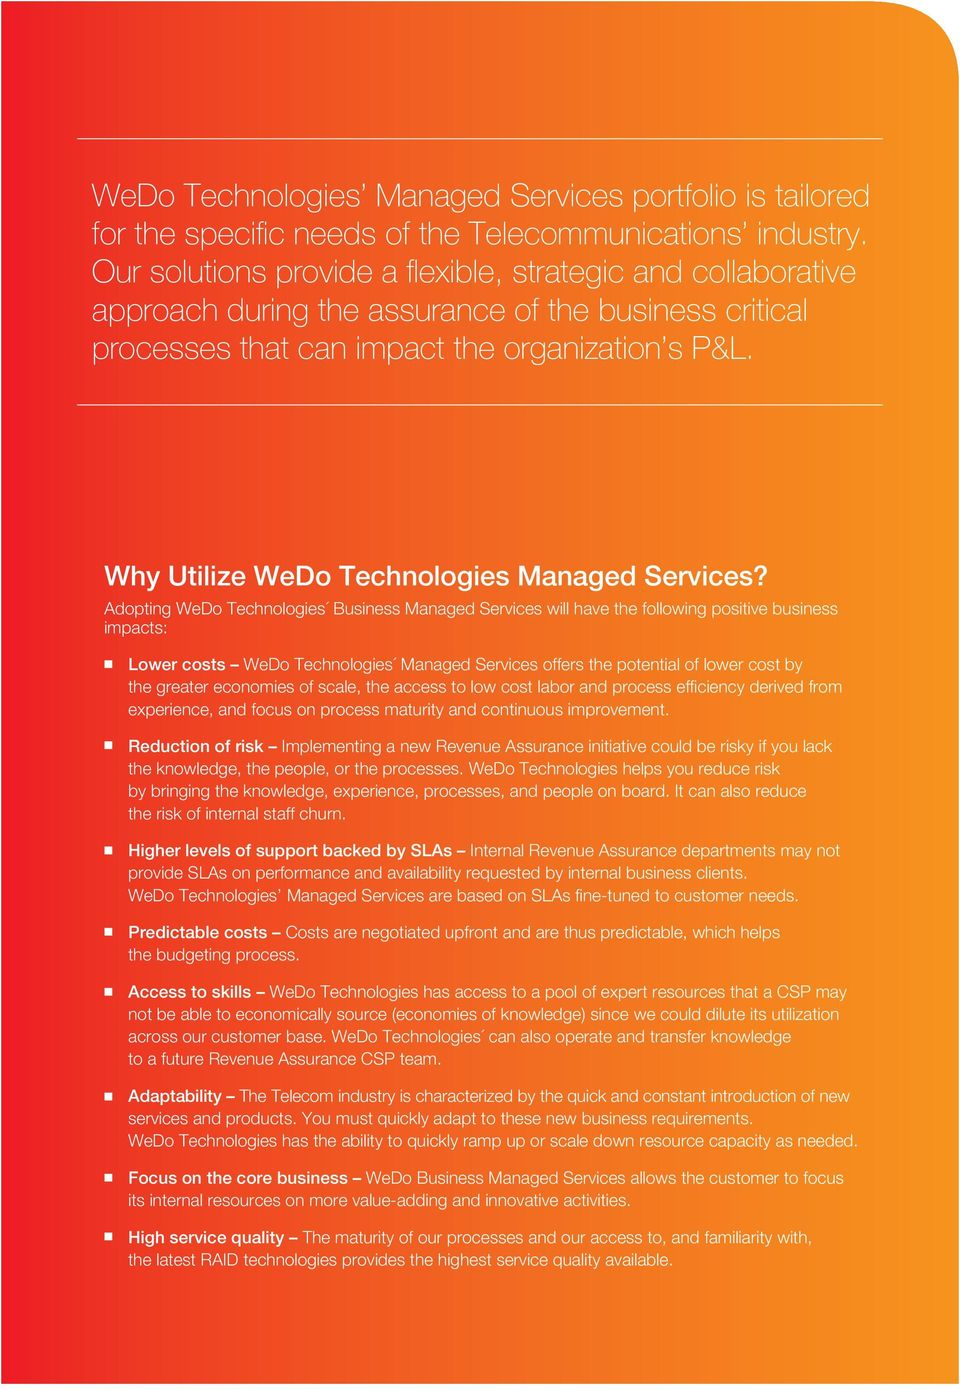 Why Utilize WeDo Technologies Managed Services?